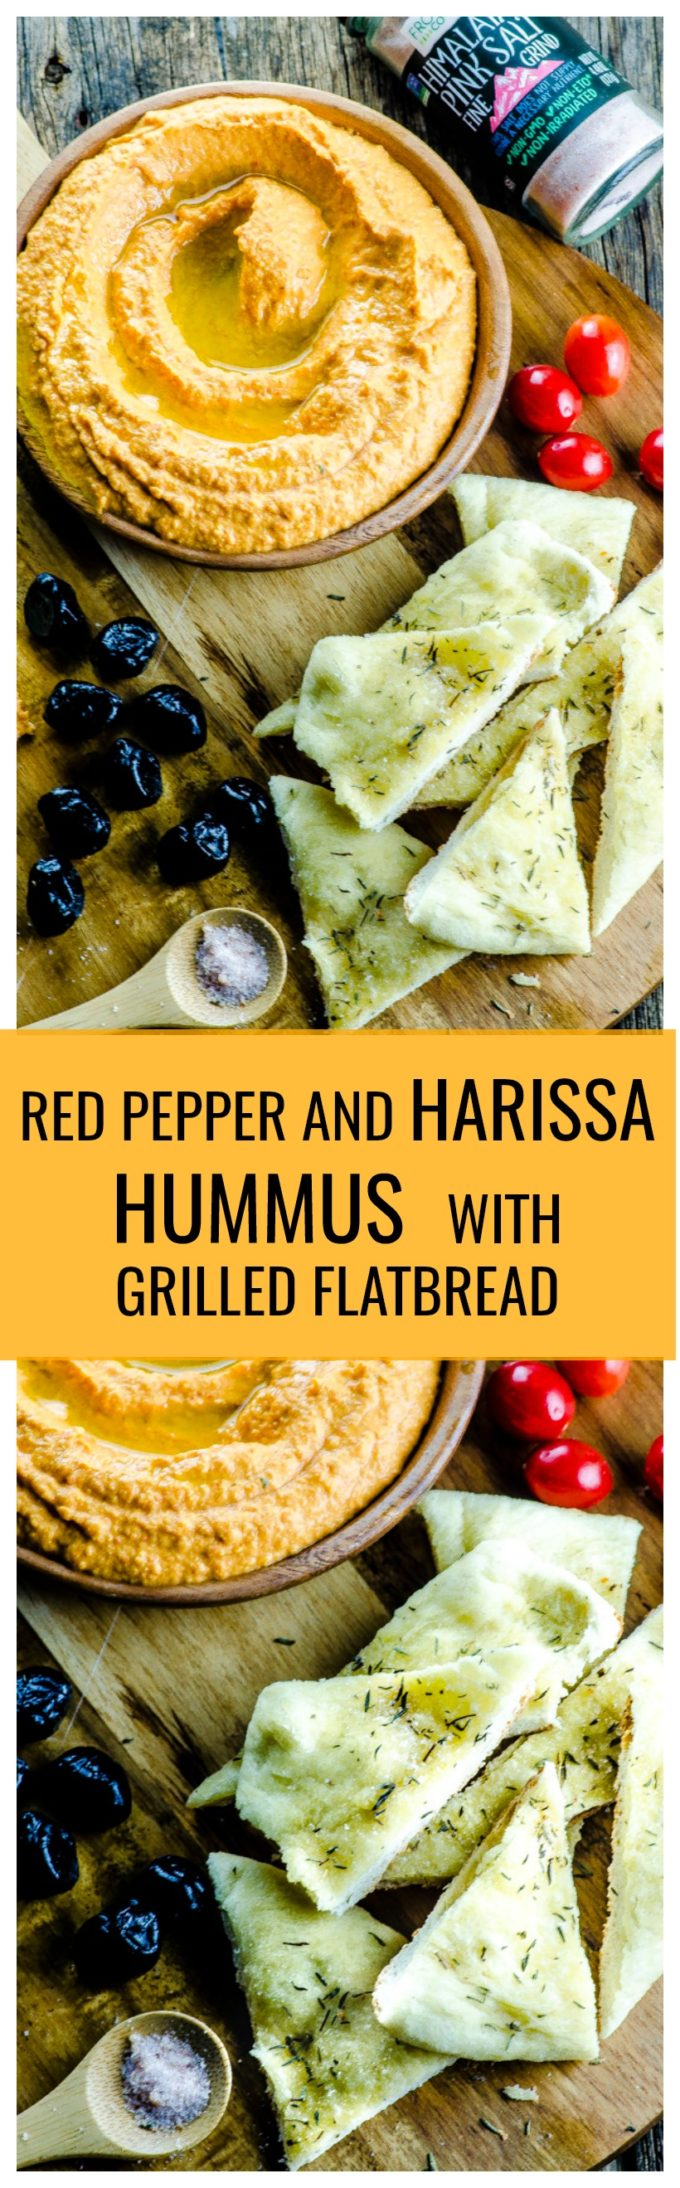 Get ready to entertain this summer with this Red Pepper and Harissa Hummus with Grilled Flatbread , seasoned with Himalayan Pink Salt and a touch of thyme.